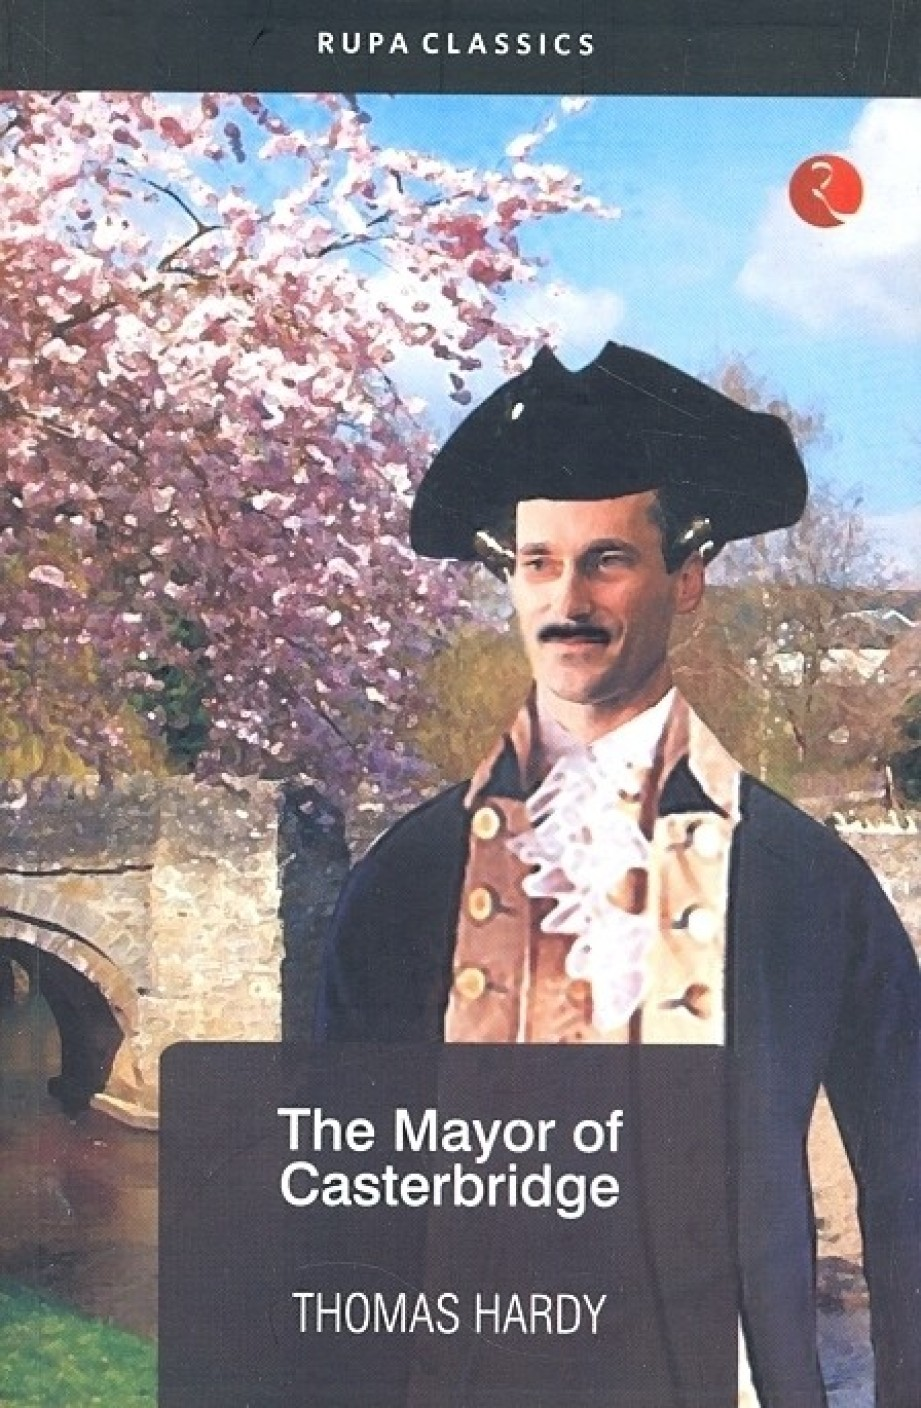 the mayor of casterbridge The theme of the mayor of casterbridge appears to be the arbitrary and almost always malign workings of the universe and blind chance upon the destinies of men.